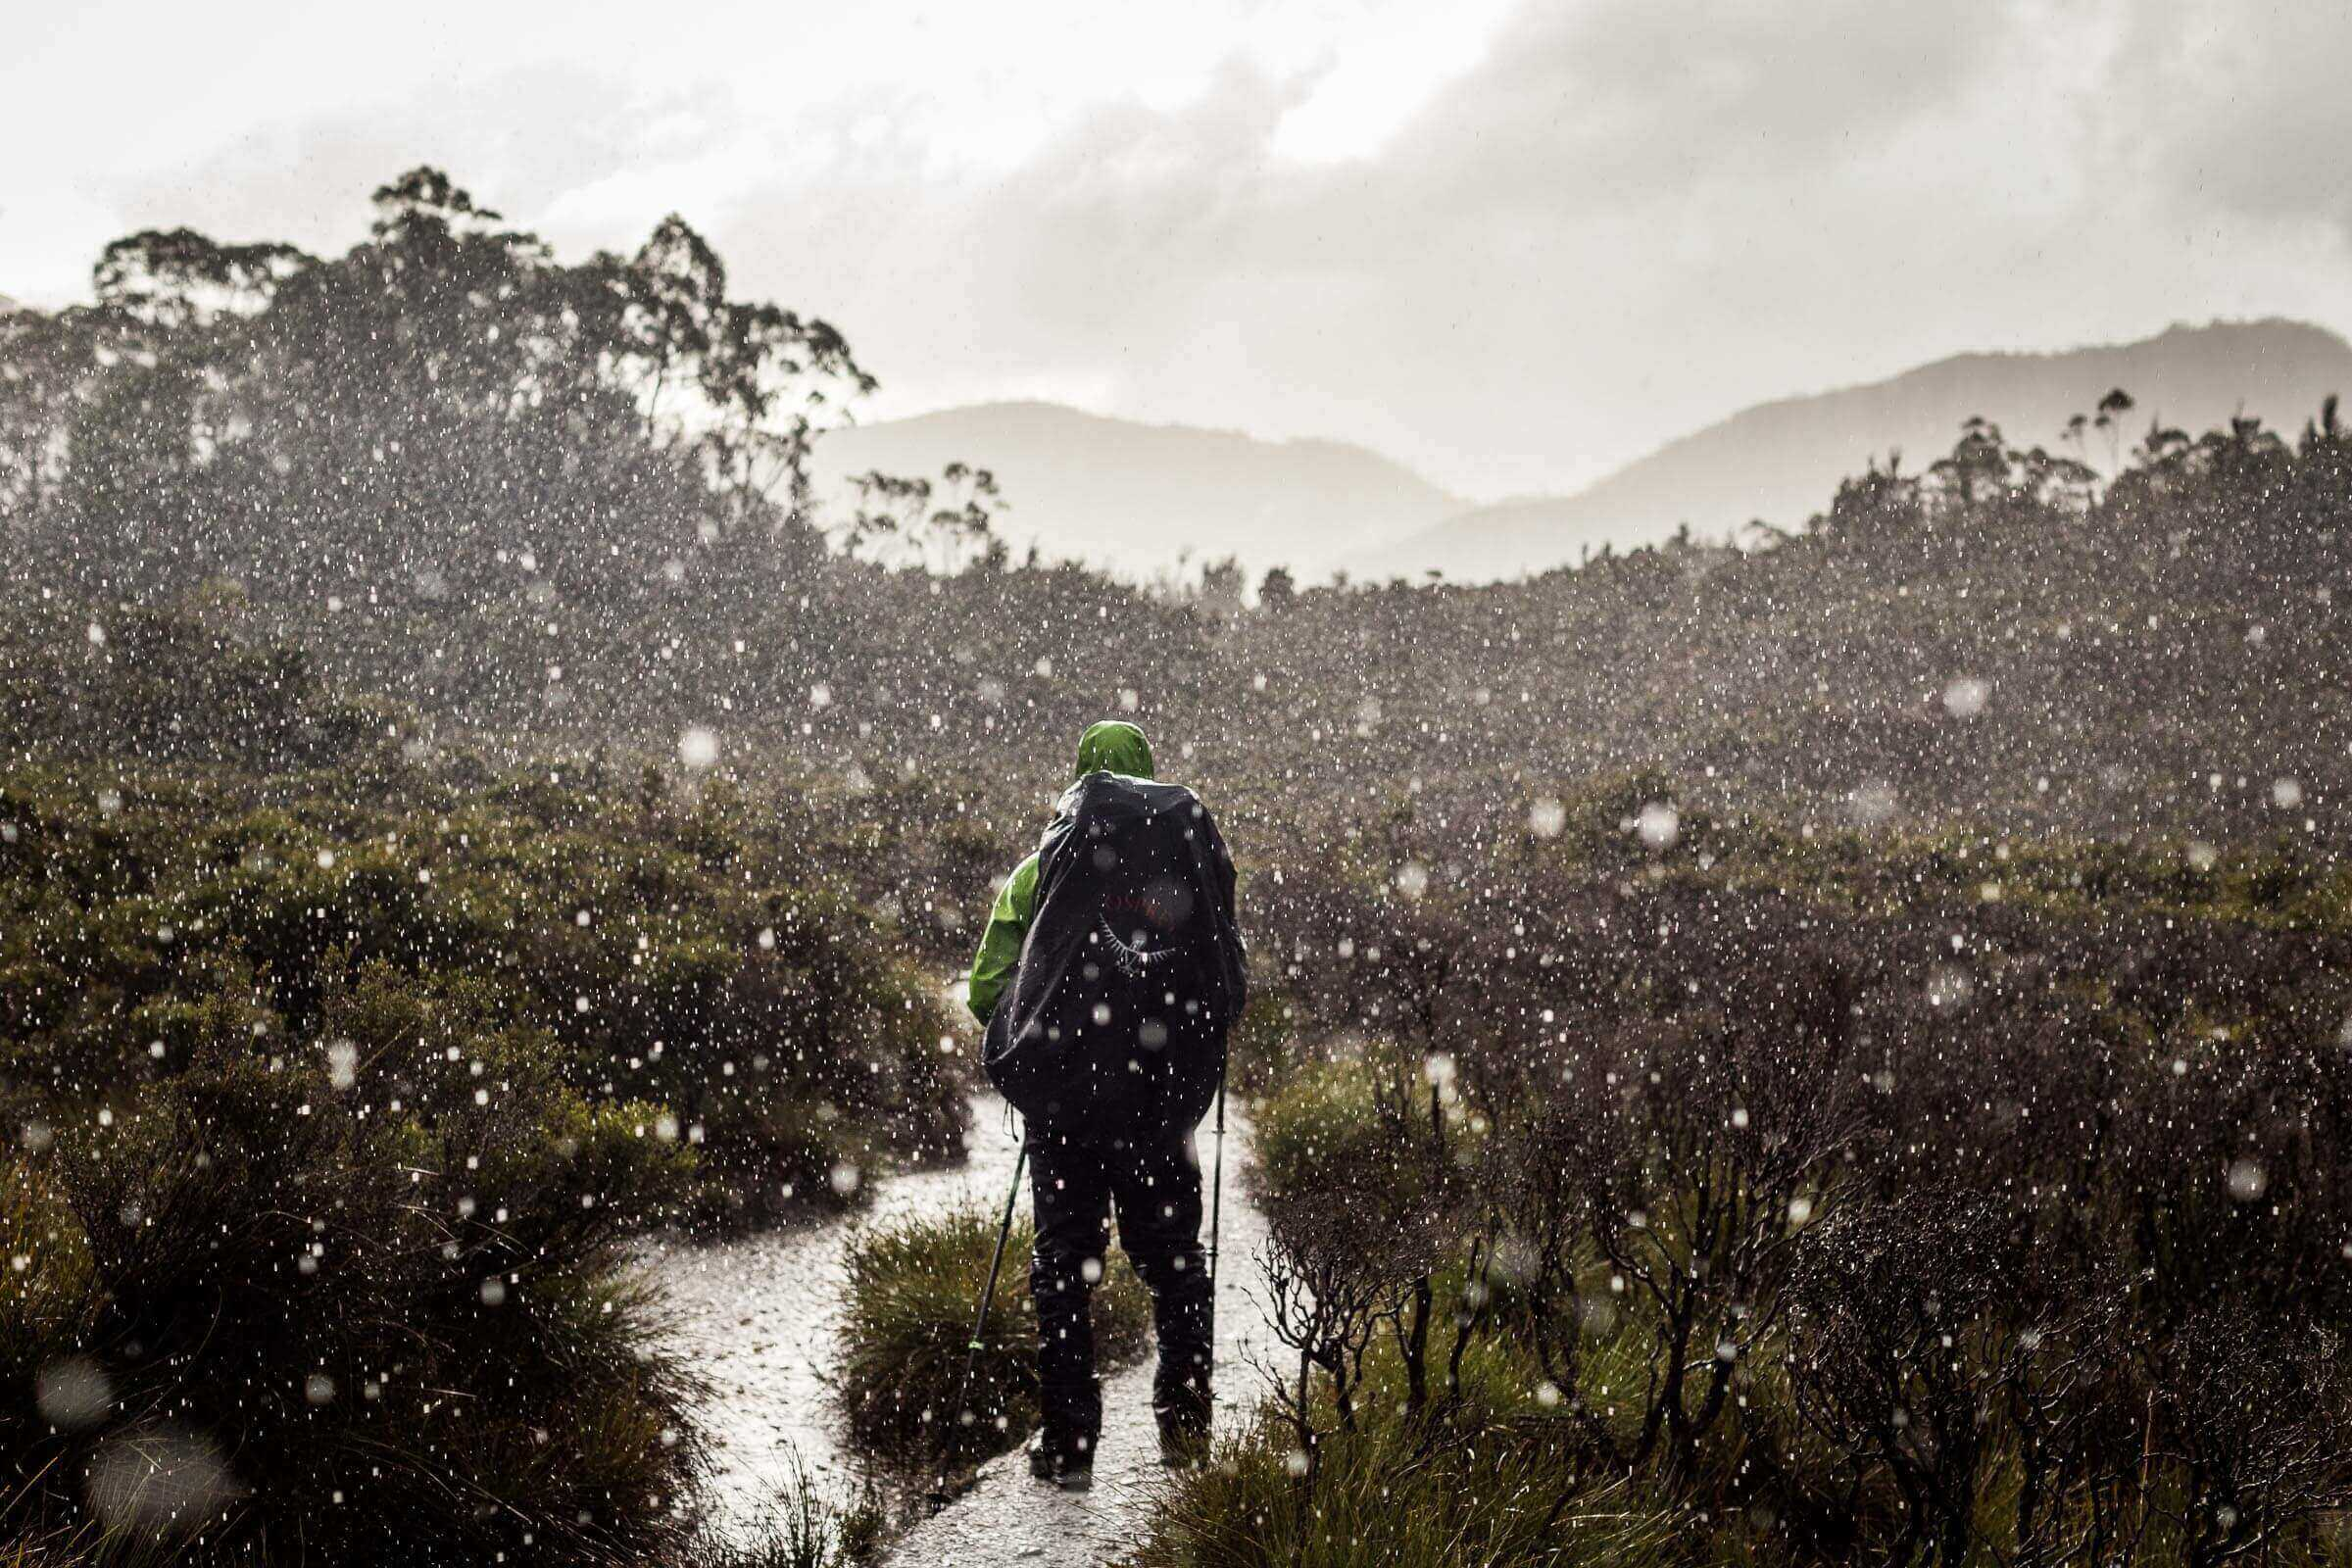 Hailstorm whilst hiking in the Southwest National Park, Tasmania